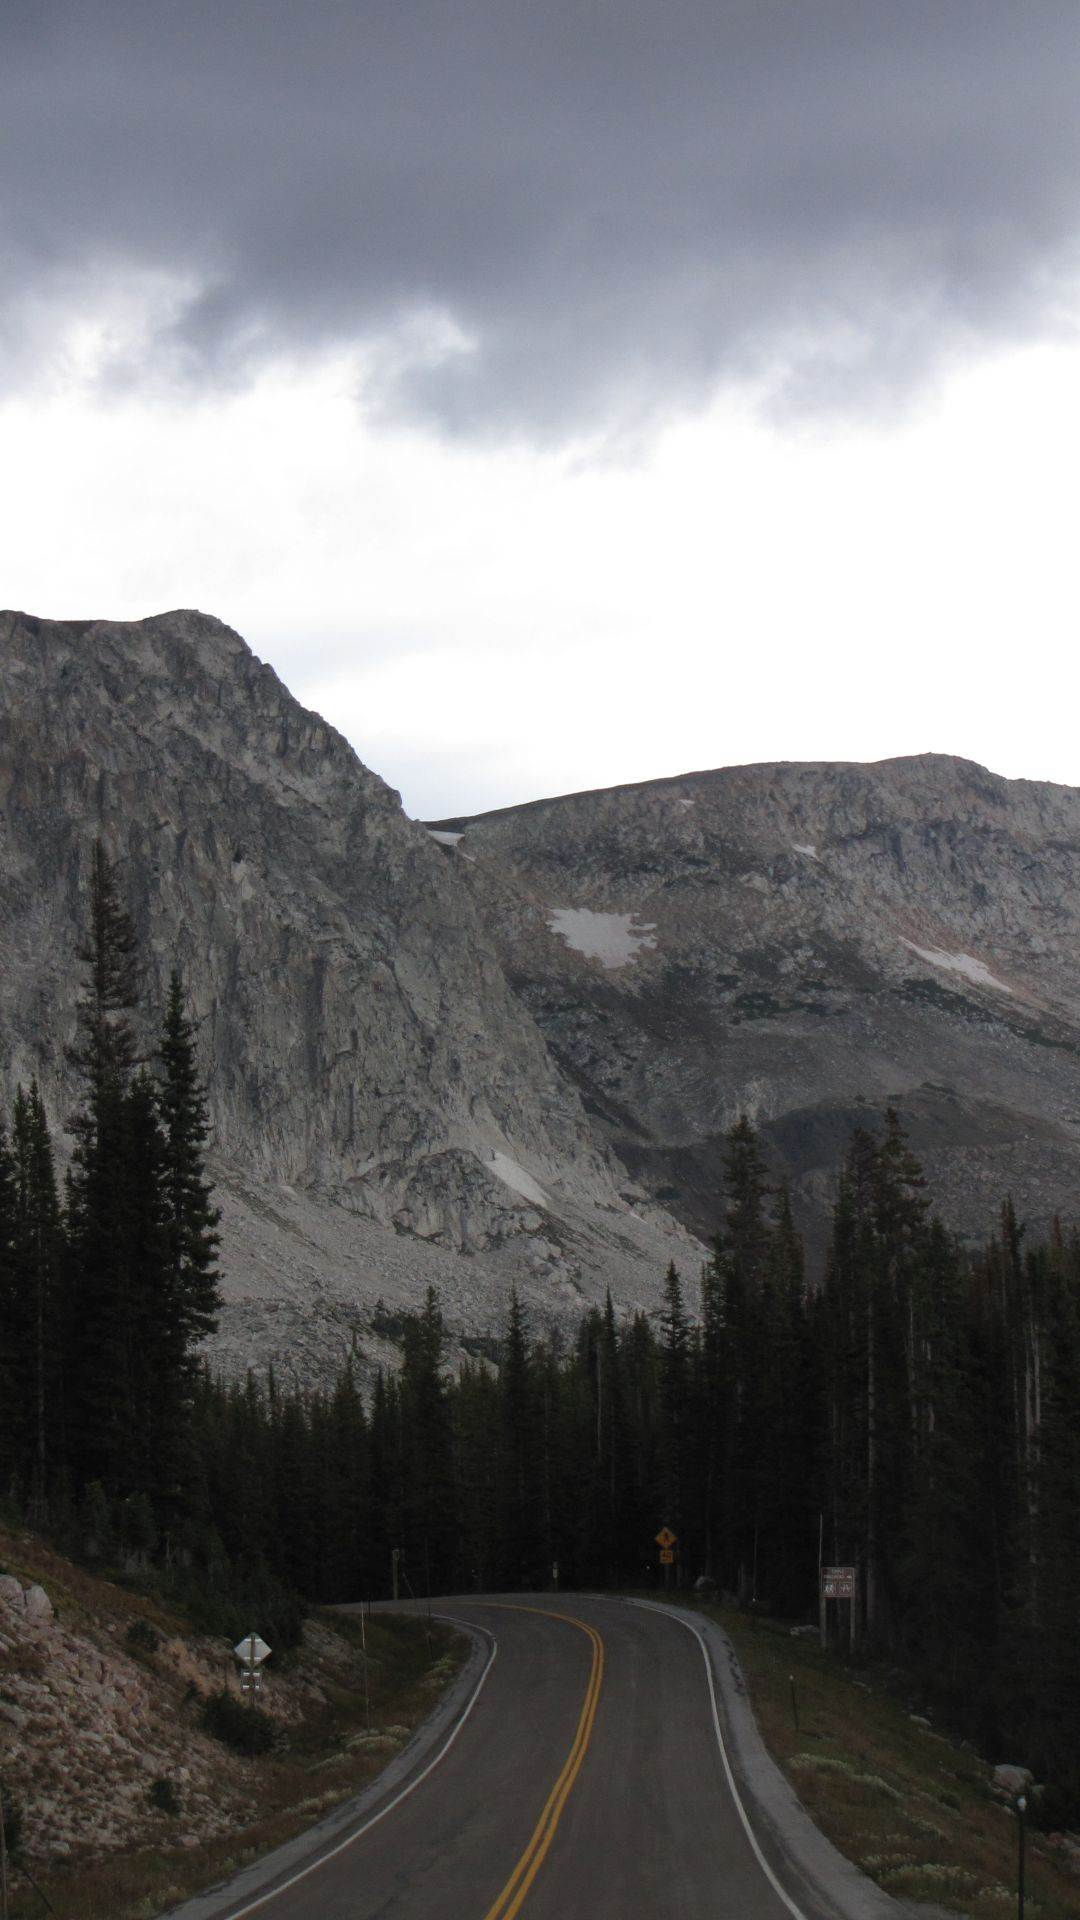 Snowy Mt Pass, WY, USA - 10,847 ft & just incredibly hard with hypoxia & frequent \'pauses\' near the top but wow was it worth it to see, this